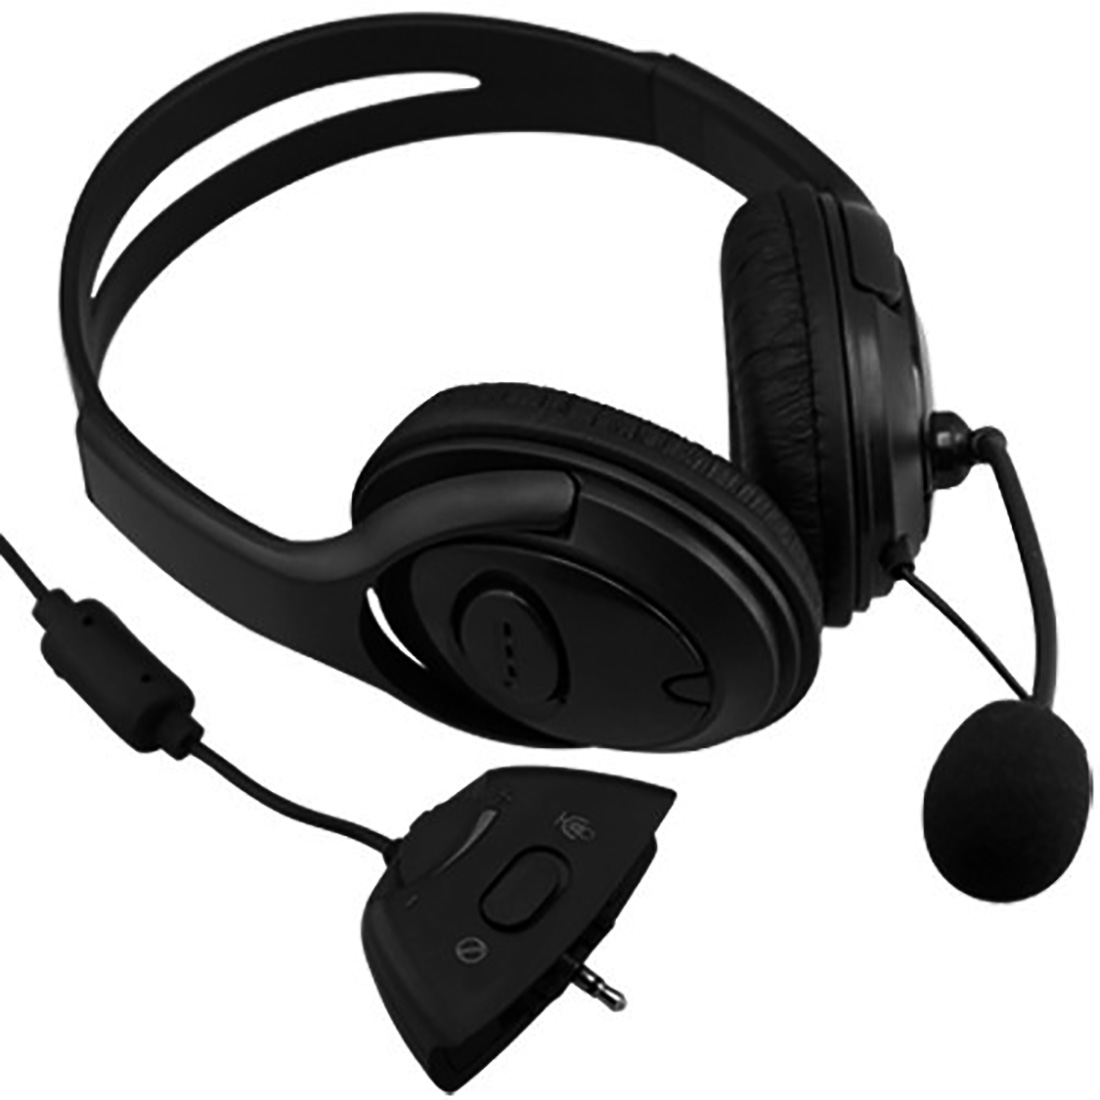 Marsnaska Protable Xbox360 Wired Gaming Chat Dual Headset Headphone Microphone For Xbox 360